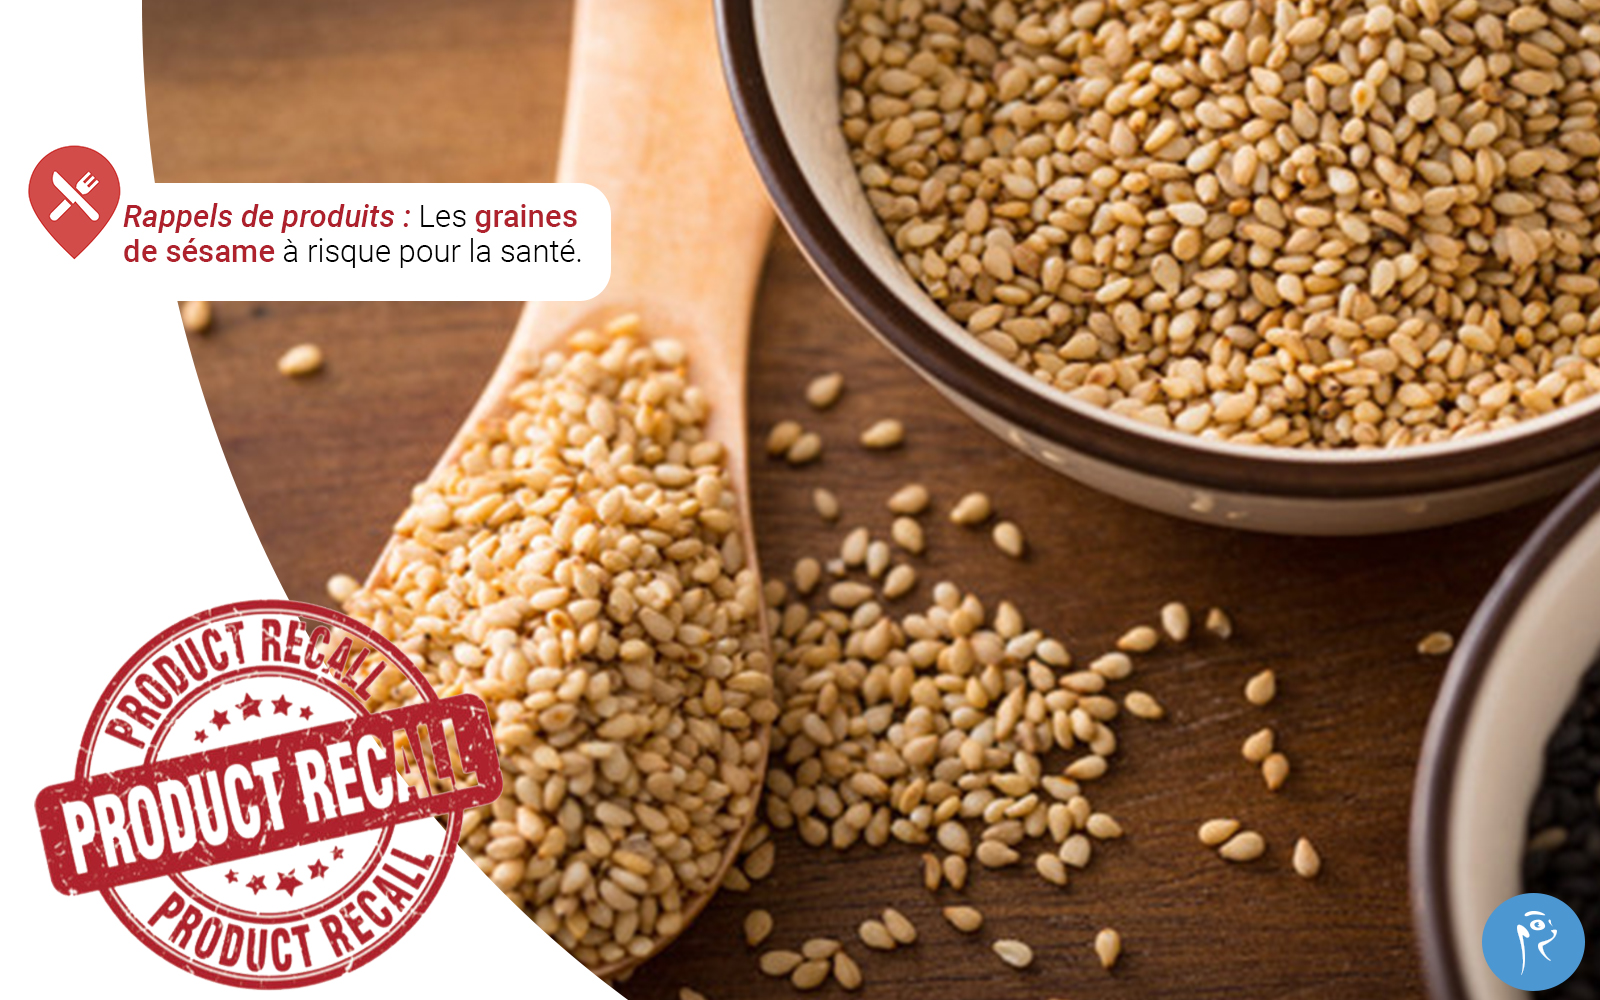 Sesame seeds at risk for health: product recall